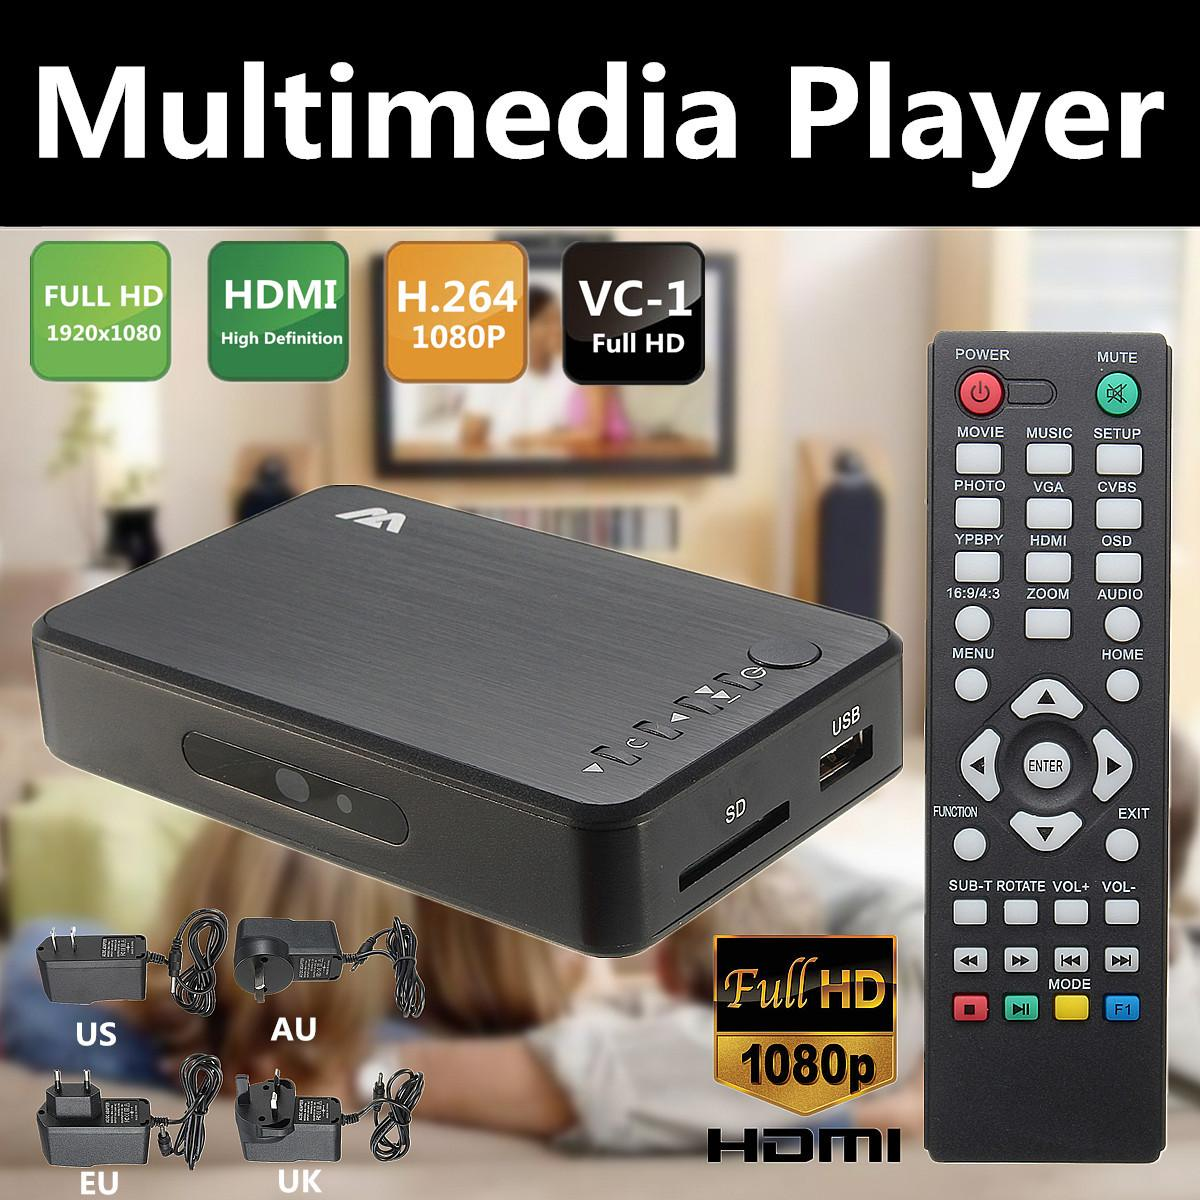 Full 1080P HD Multi Media Player HDMI/VGA/AV w/ Remote Control TV BOX 3 FAT32 NTFS Output EU/UK/US/AU Portable Easy Installation